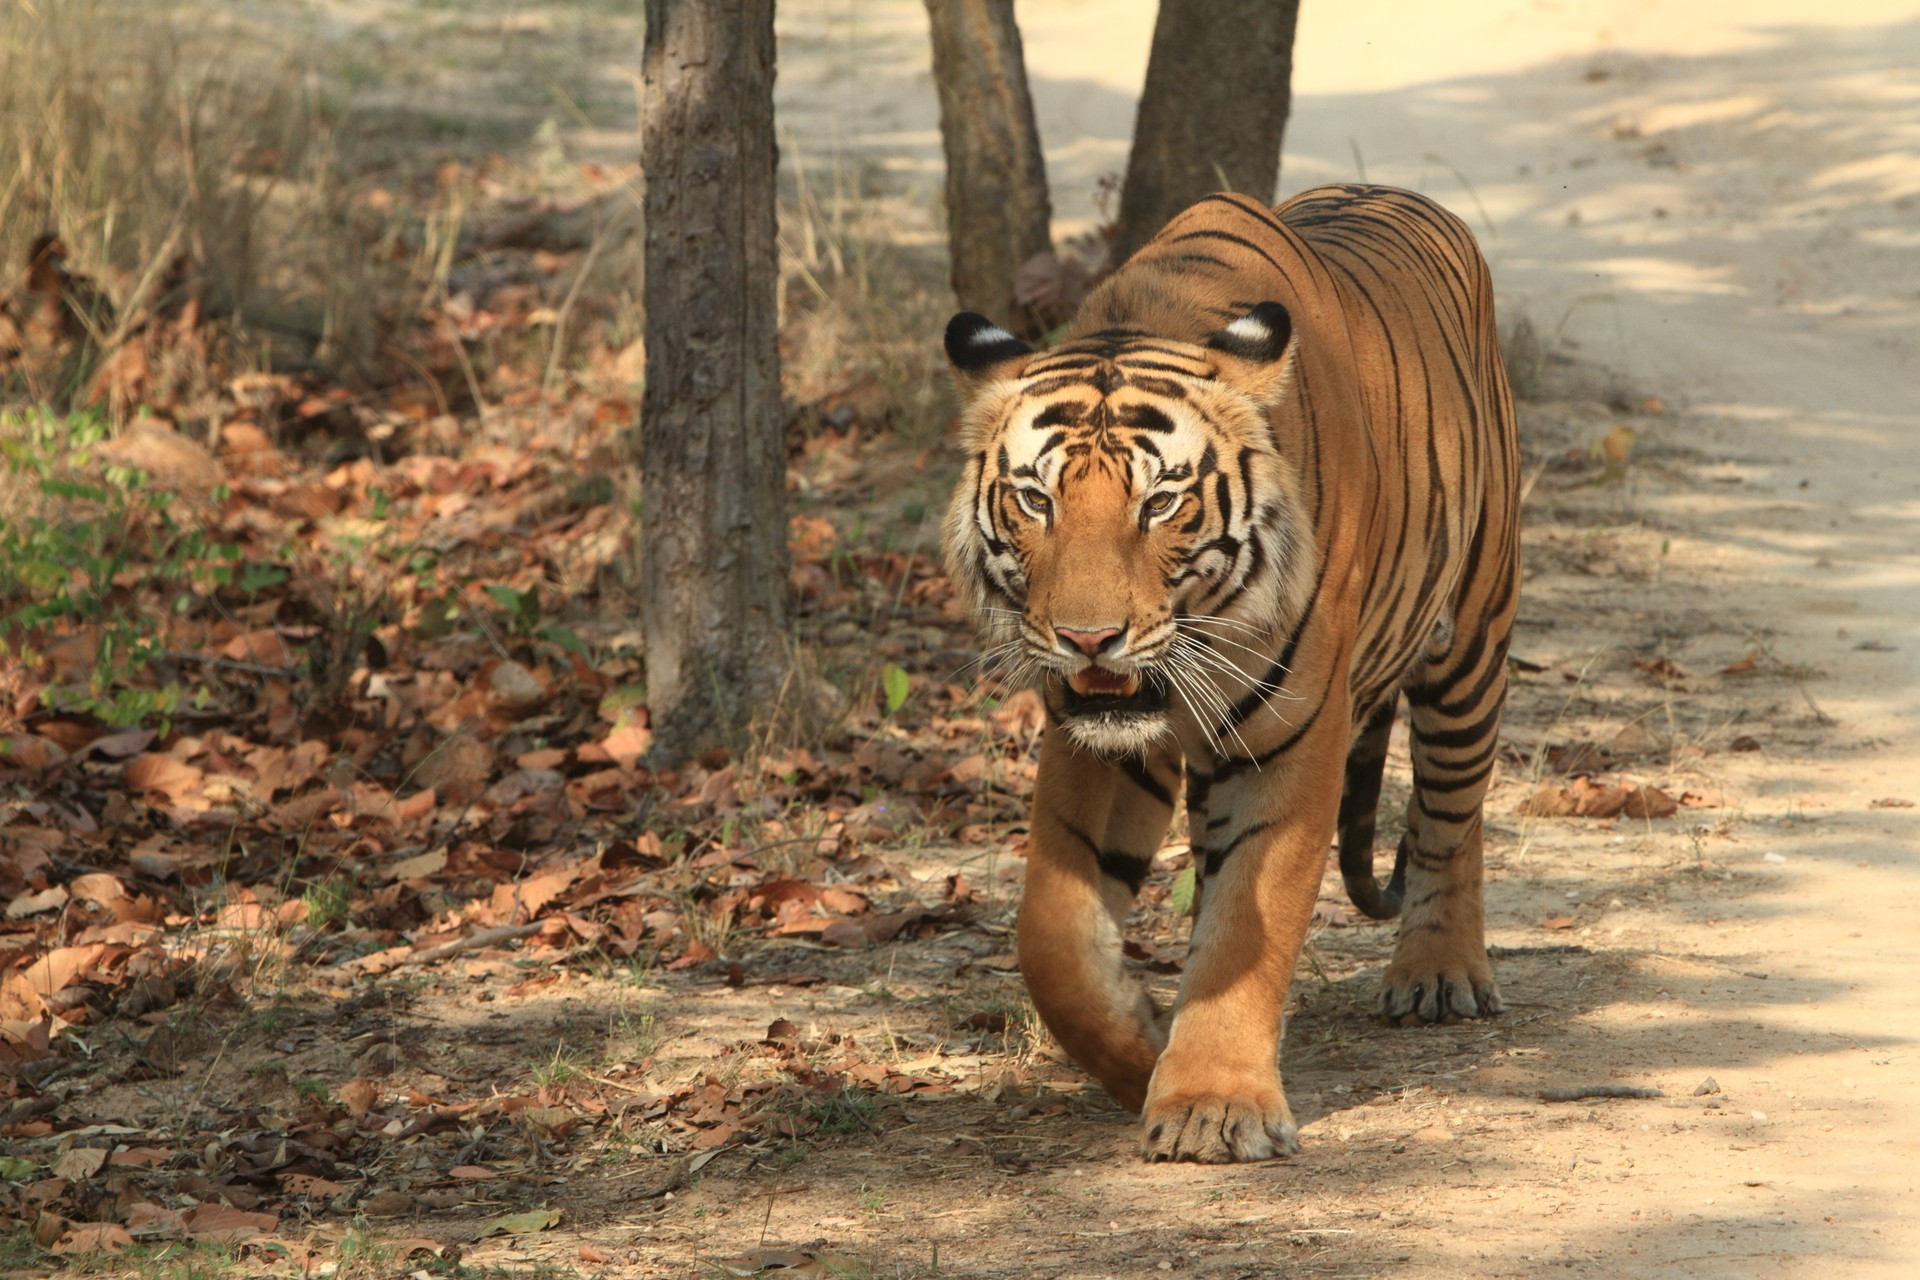 Tiger in Kanha Tiger Reserve India